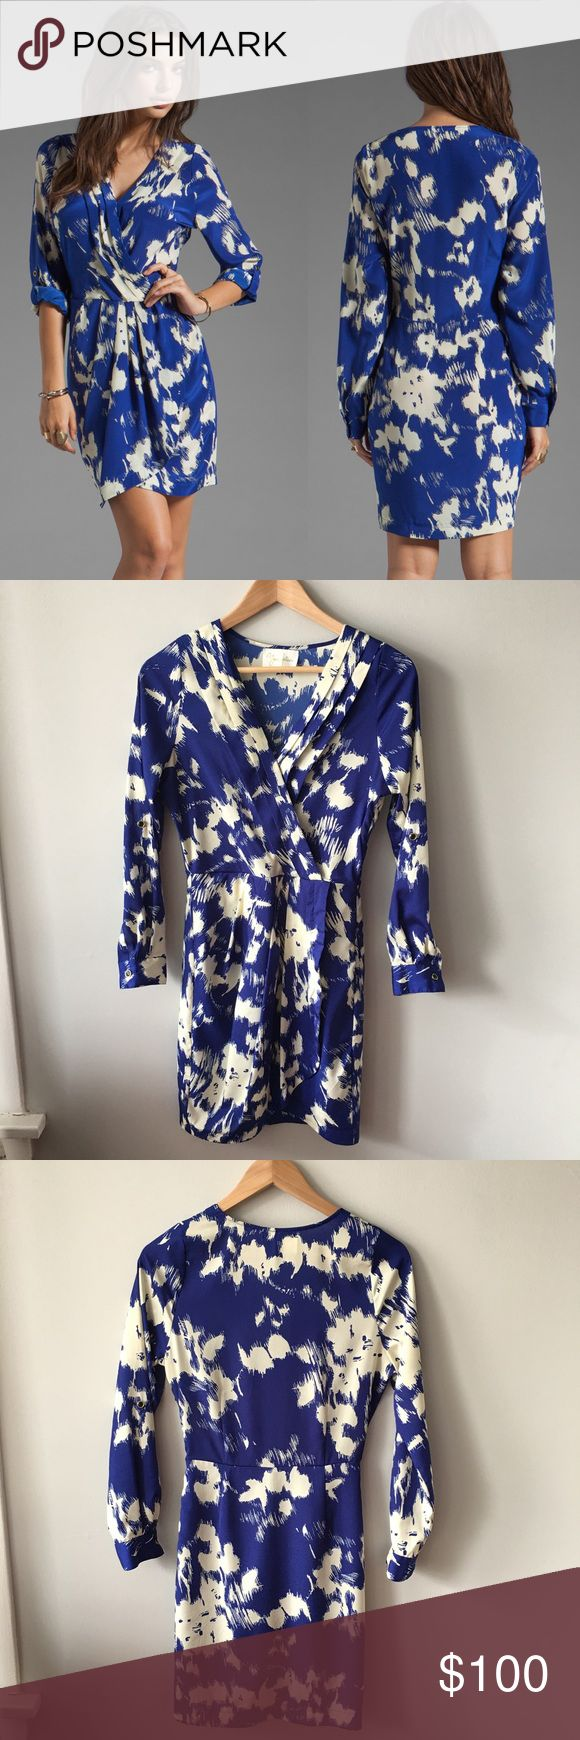 """Yumi Kim Alexis Dress Silk pleated wrap front dress in Navy Splash print from Yumi Kim.  ·       Roll tabbed sleeves – can wear sleeves rolled up or all the way down ·       100% silk ·       Approx. 34"""" long ·       Unlined ·       Dry clean Worn once and dry cleaned. No stains, holes, pulls, snags or pilling – excellent condition! Bundle & save 💰! Sorry - 🚫 trades! Yumi Kim Dresses"""